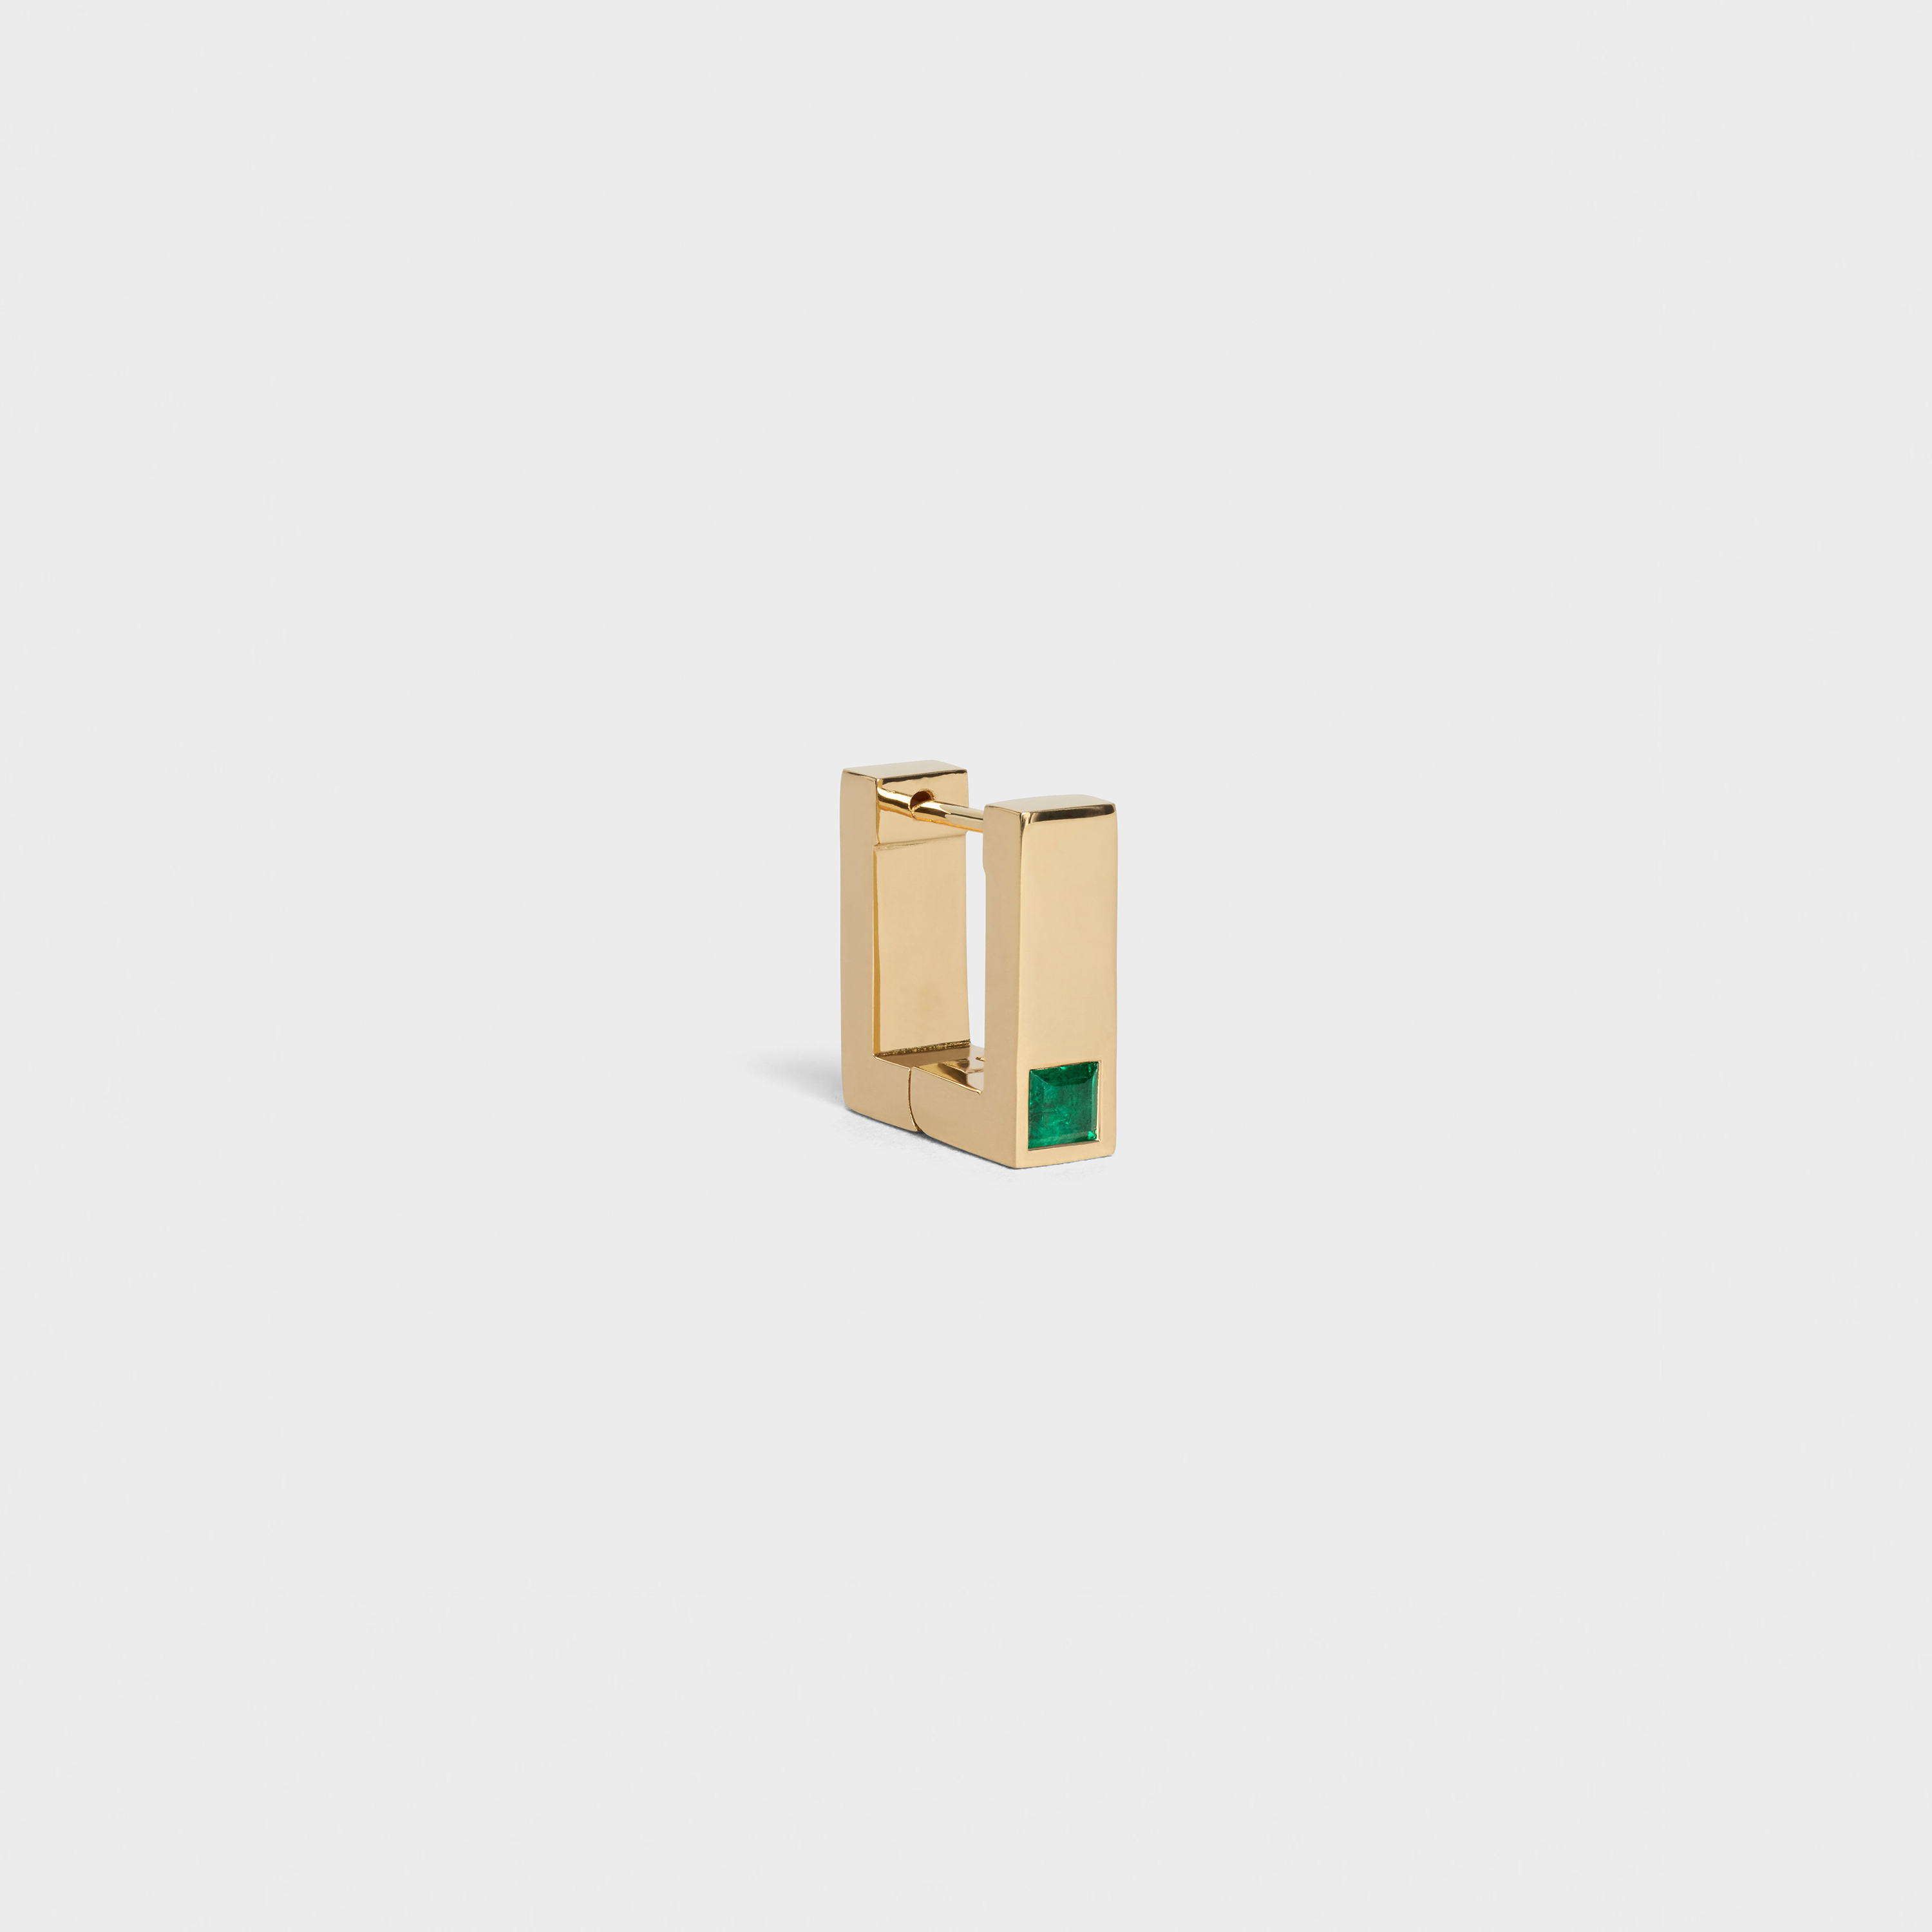 Celine Sentimental Square Earring in Yellow Gold and Emerald | CELINE